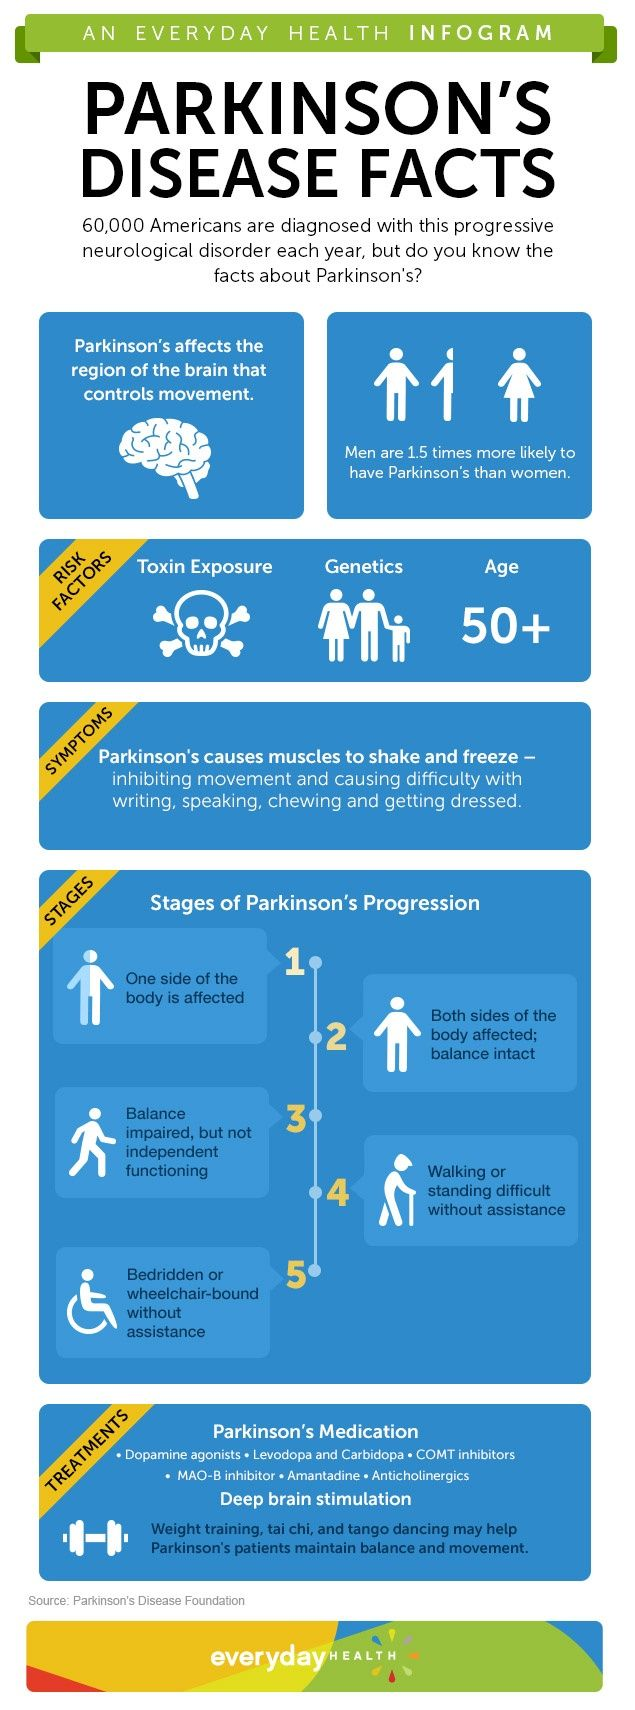 parkinsons disease Parkinson's disease is a brain disorder that leads to shaking, stiffness, and difficulty with walking, balance, and coordination parkinson's symptoms usually begin gradually and get worse over time as the disease progresses, people may have difficulty walking and talking they may also have mental.